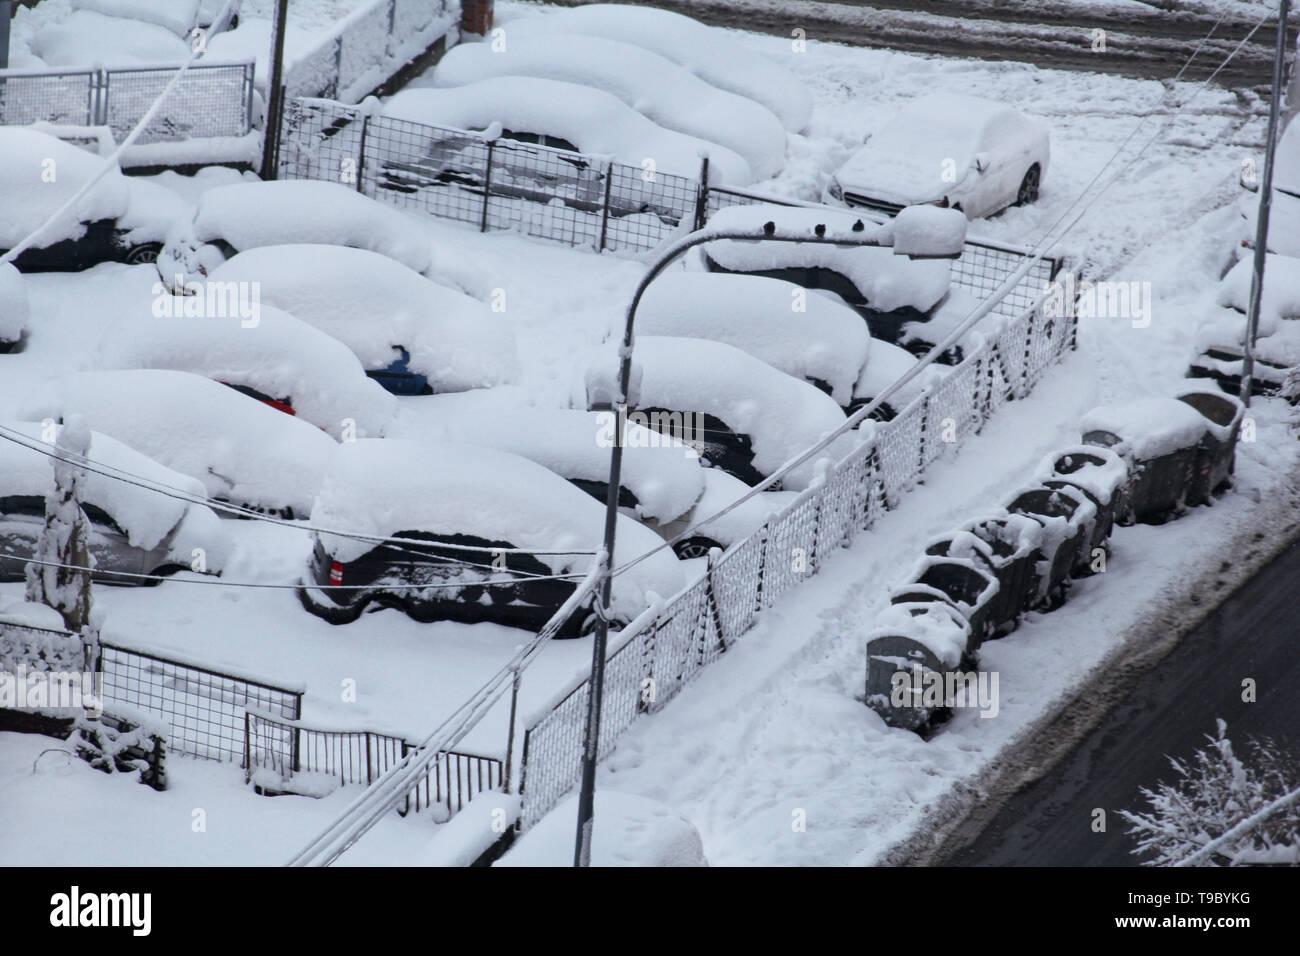 Cars on parking and street covered with big snow layer. View of winter and snowing on city street with snowflakes. In snowy season, motor vehicles. - Stock Image